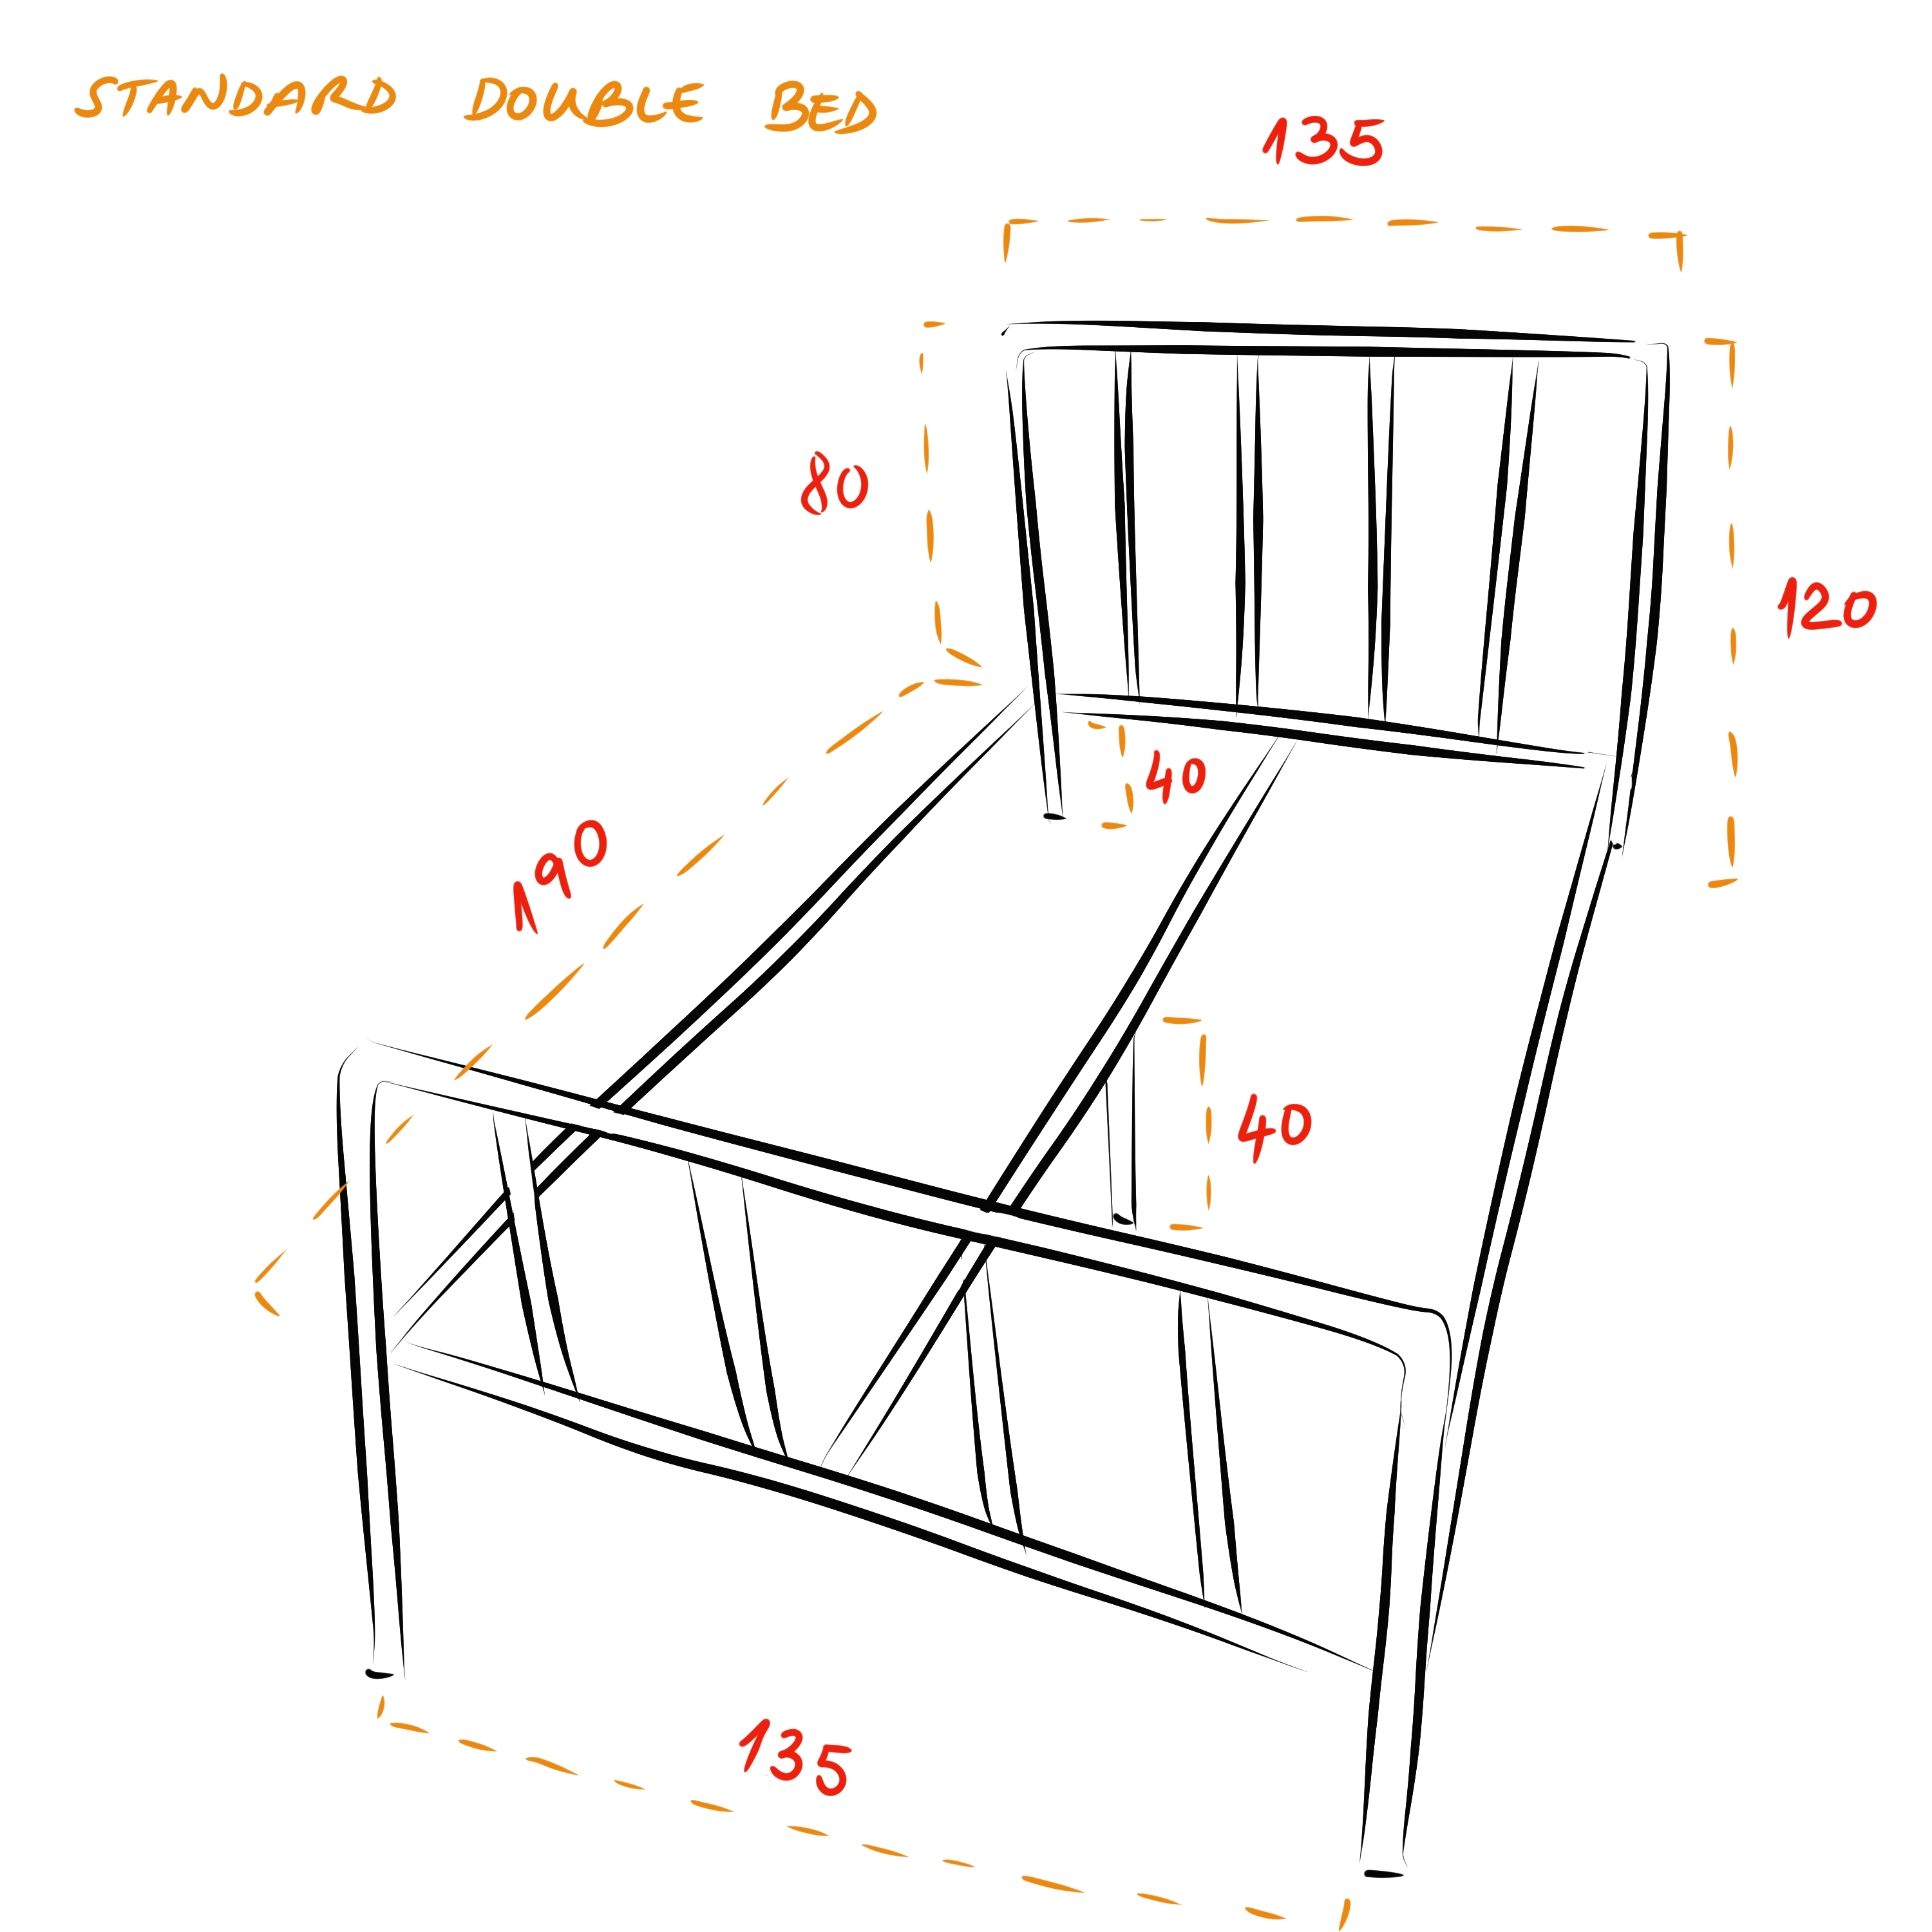 Camden industrial bed frame - Standard double